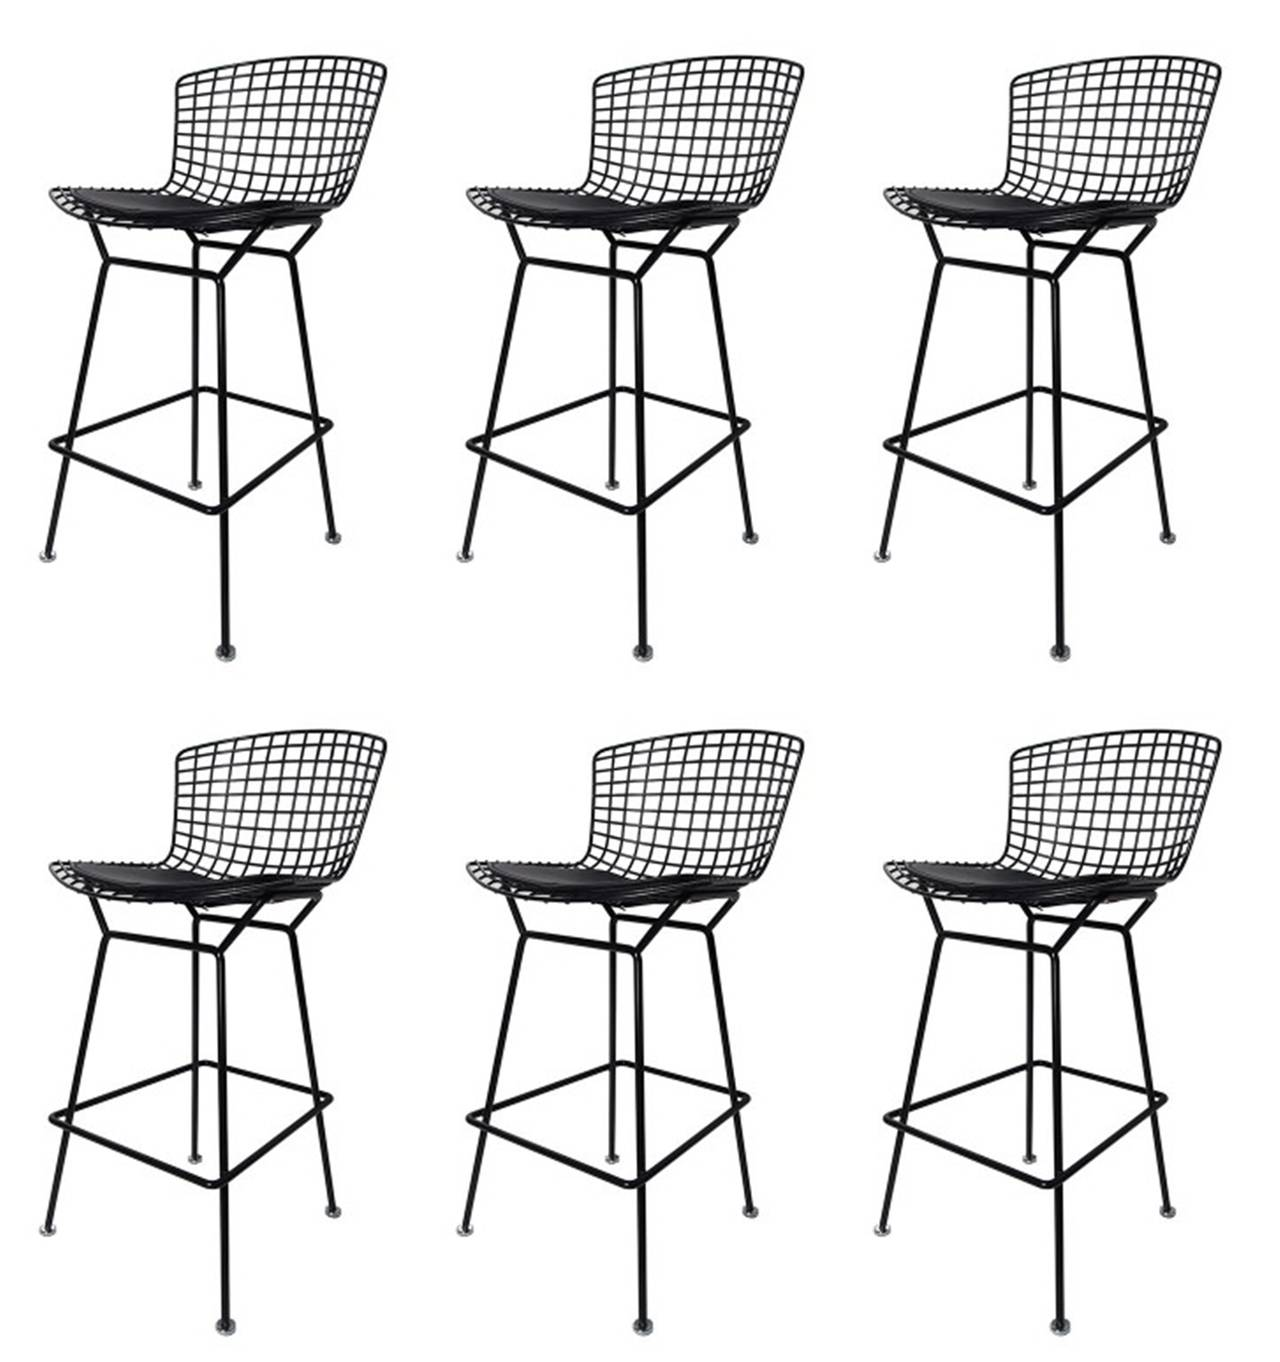 Six Stylish Barstools Love Newlibrarygood Com